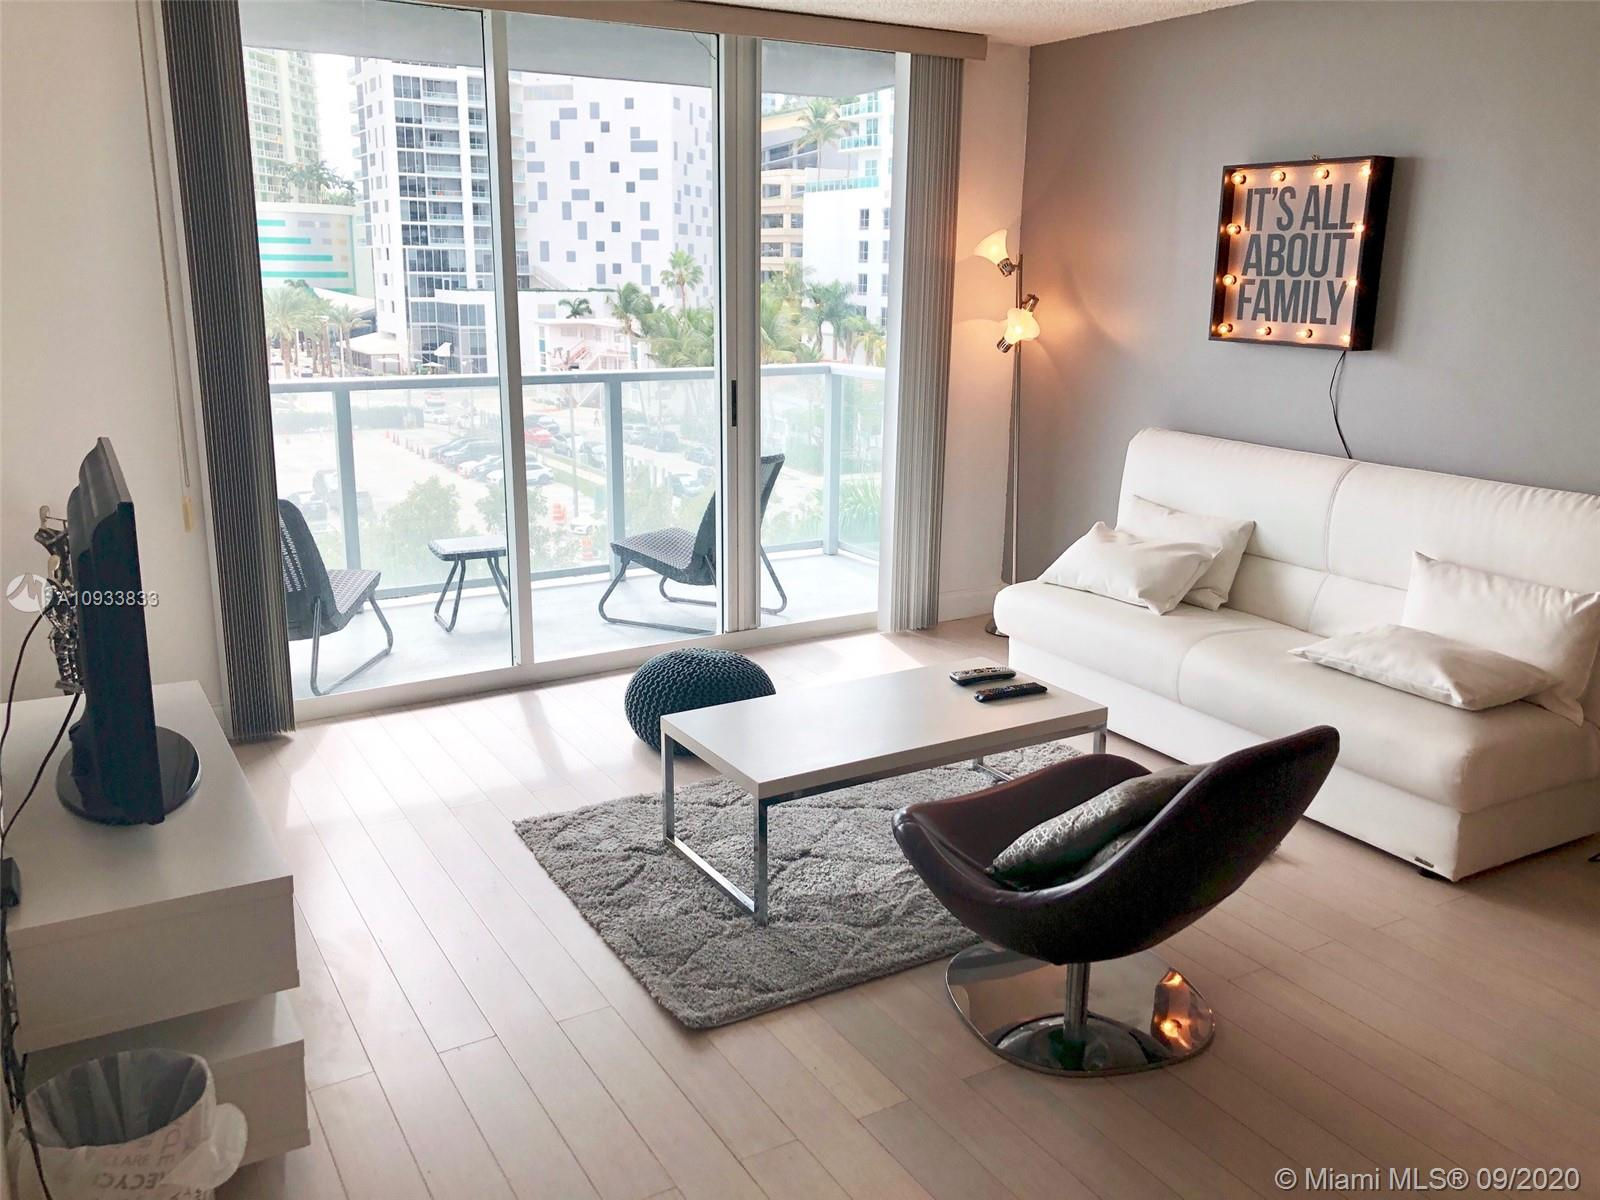 The Mark on Brickell #405 - 1155 Brickell Bay Dr #405, Miami, FL 33131